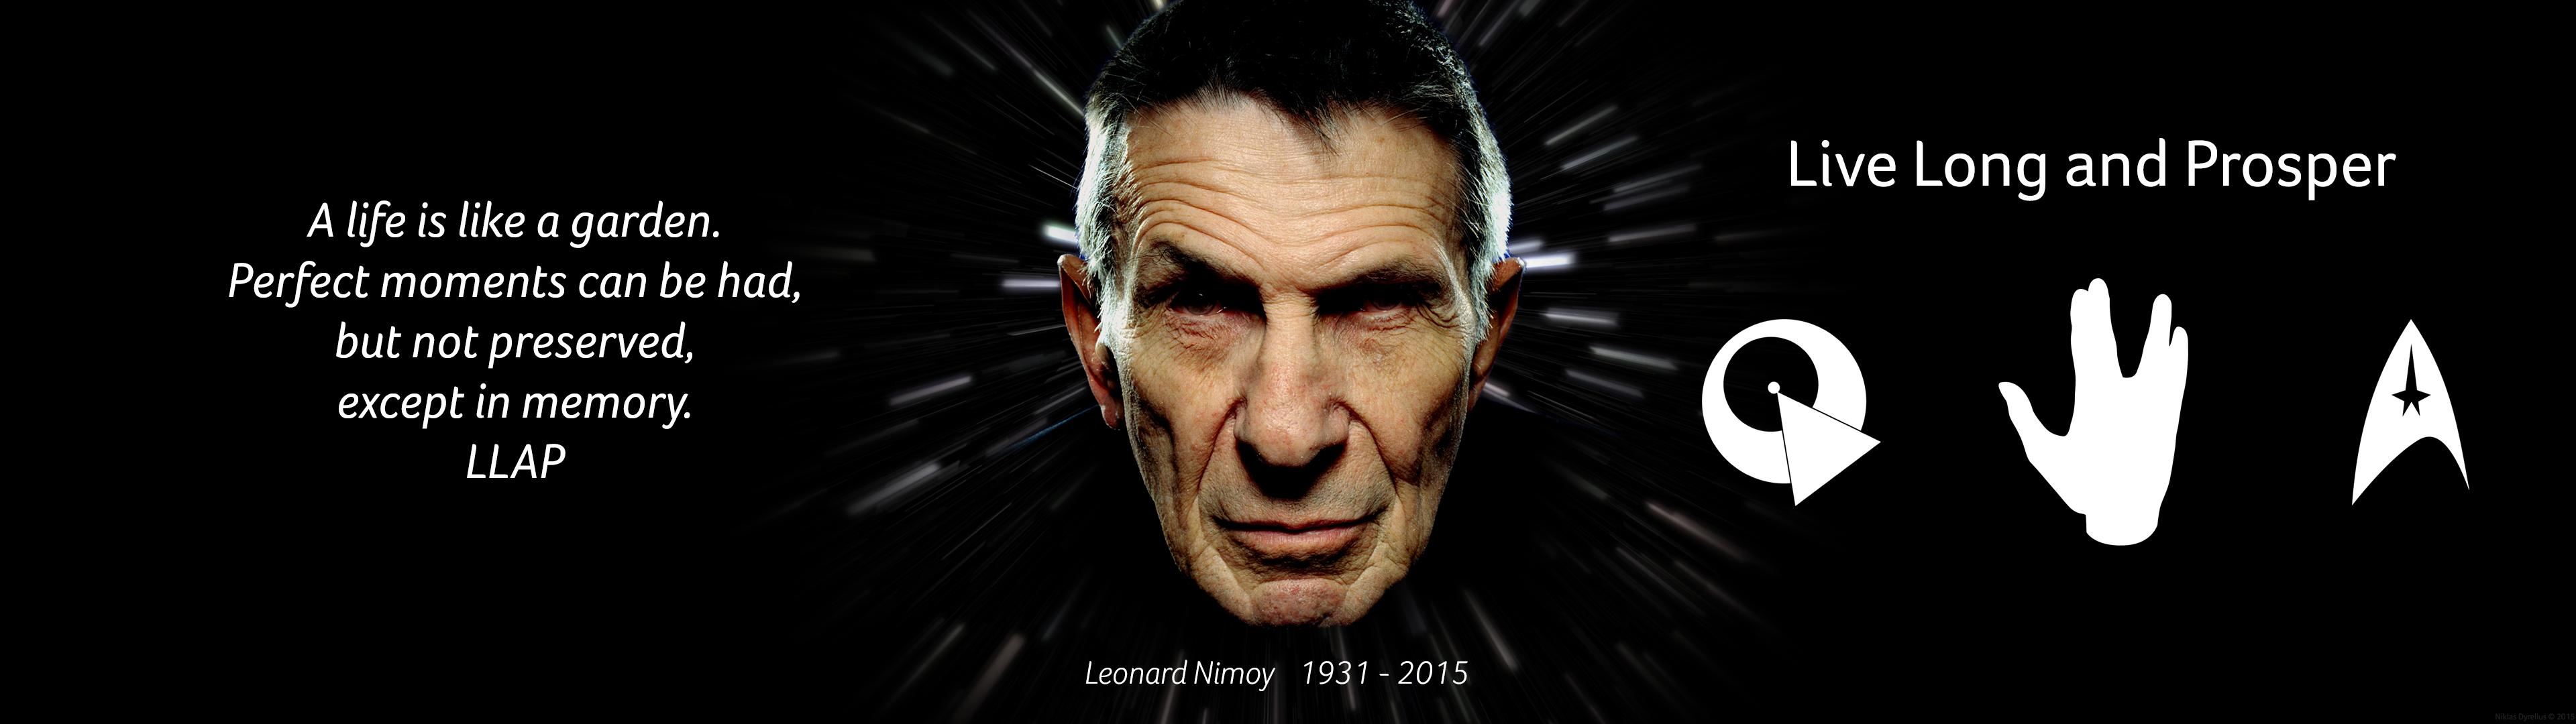 Leonard Nimoy tribute, dual screen [3840x1080] : StarTrekWallpaper